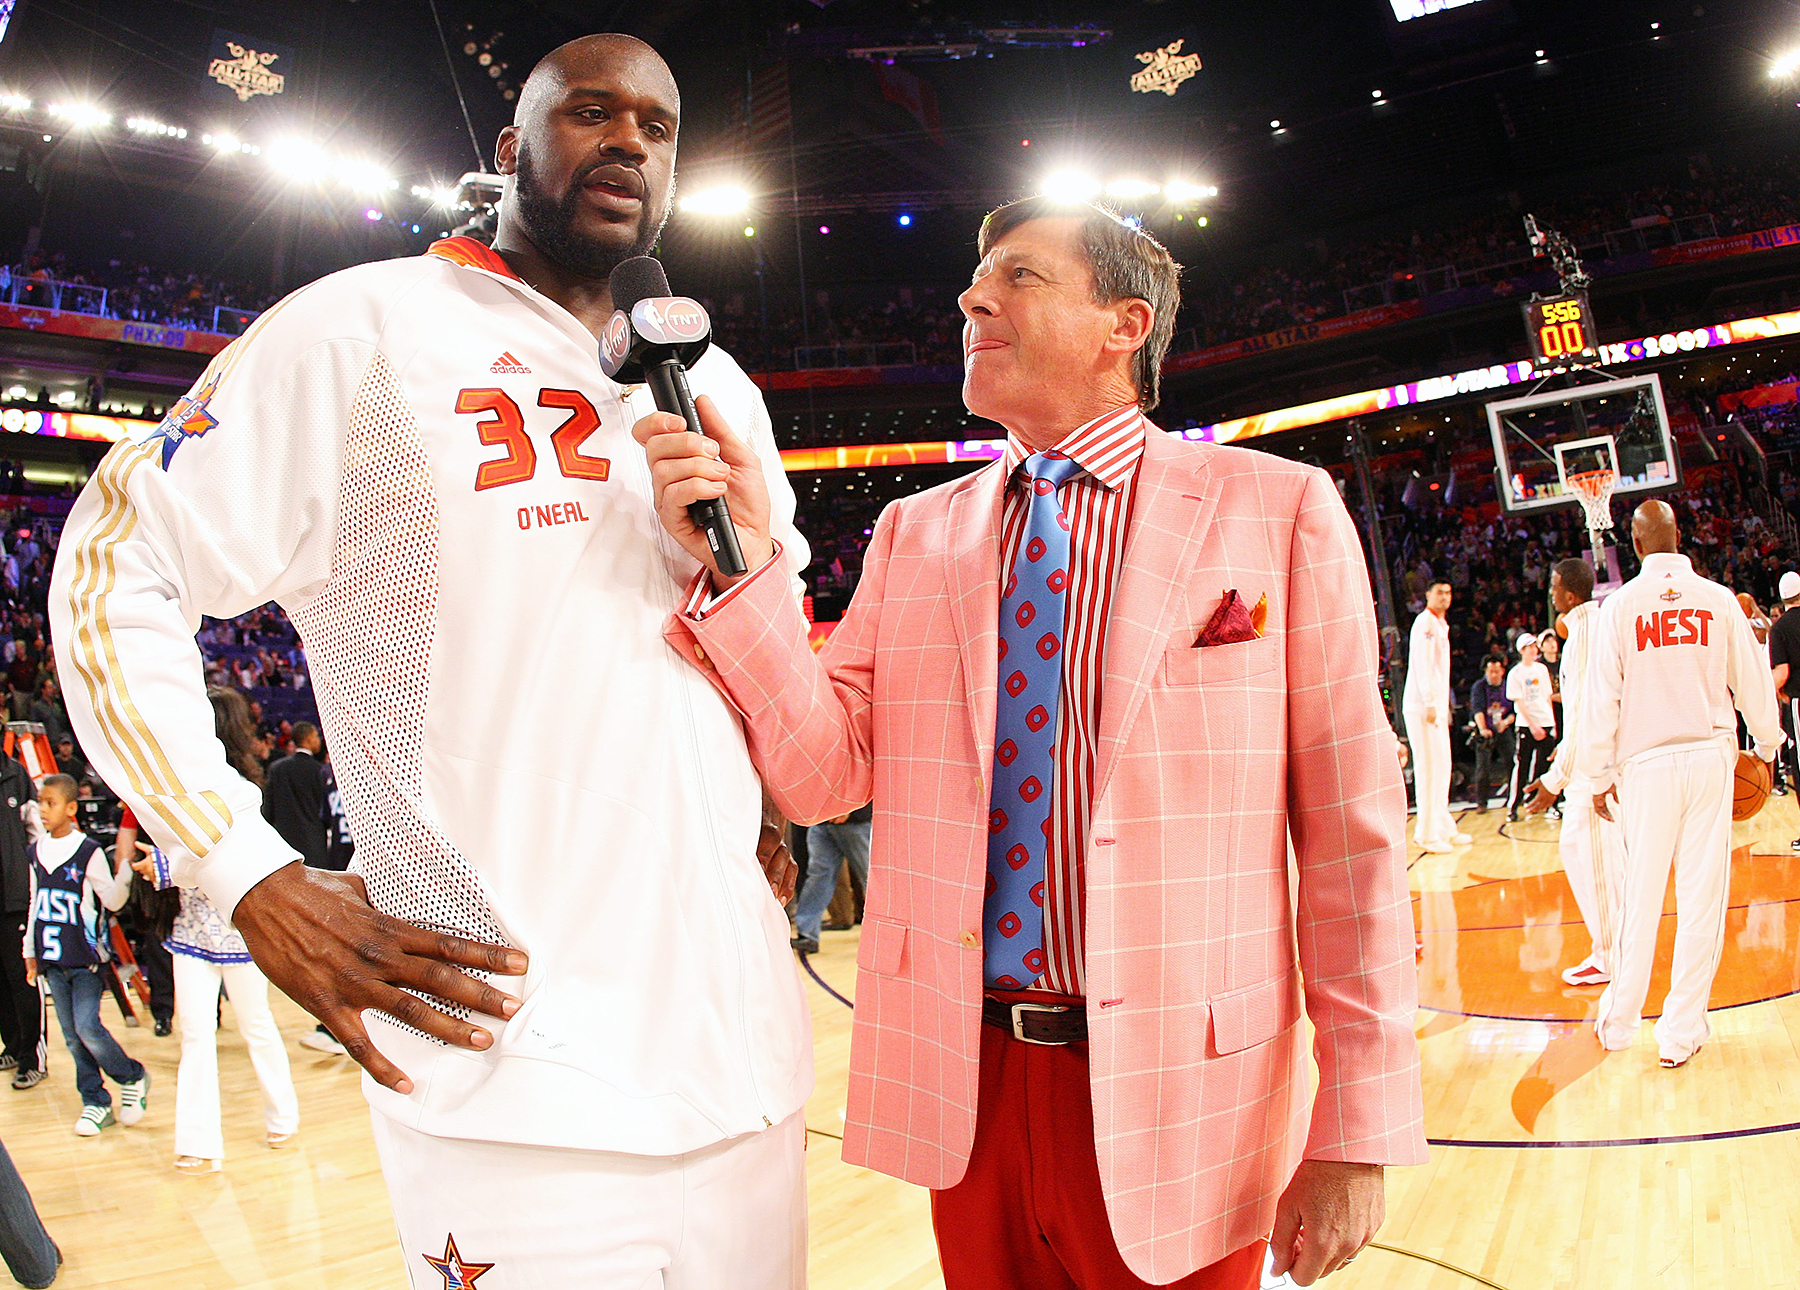 Shaquille O'Neal and Craig Sager